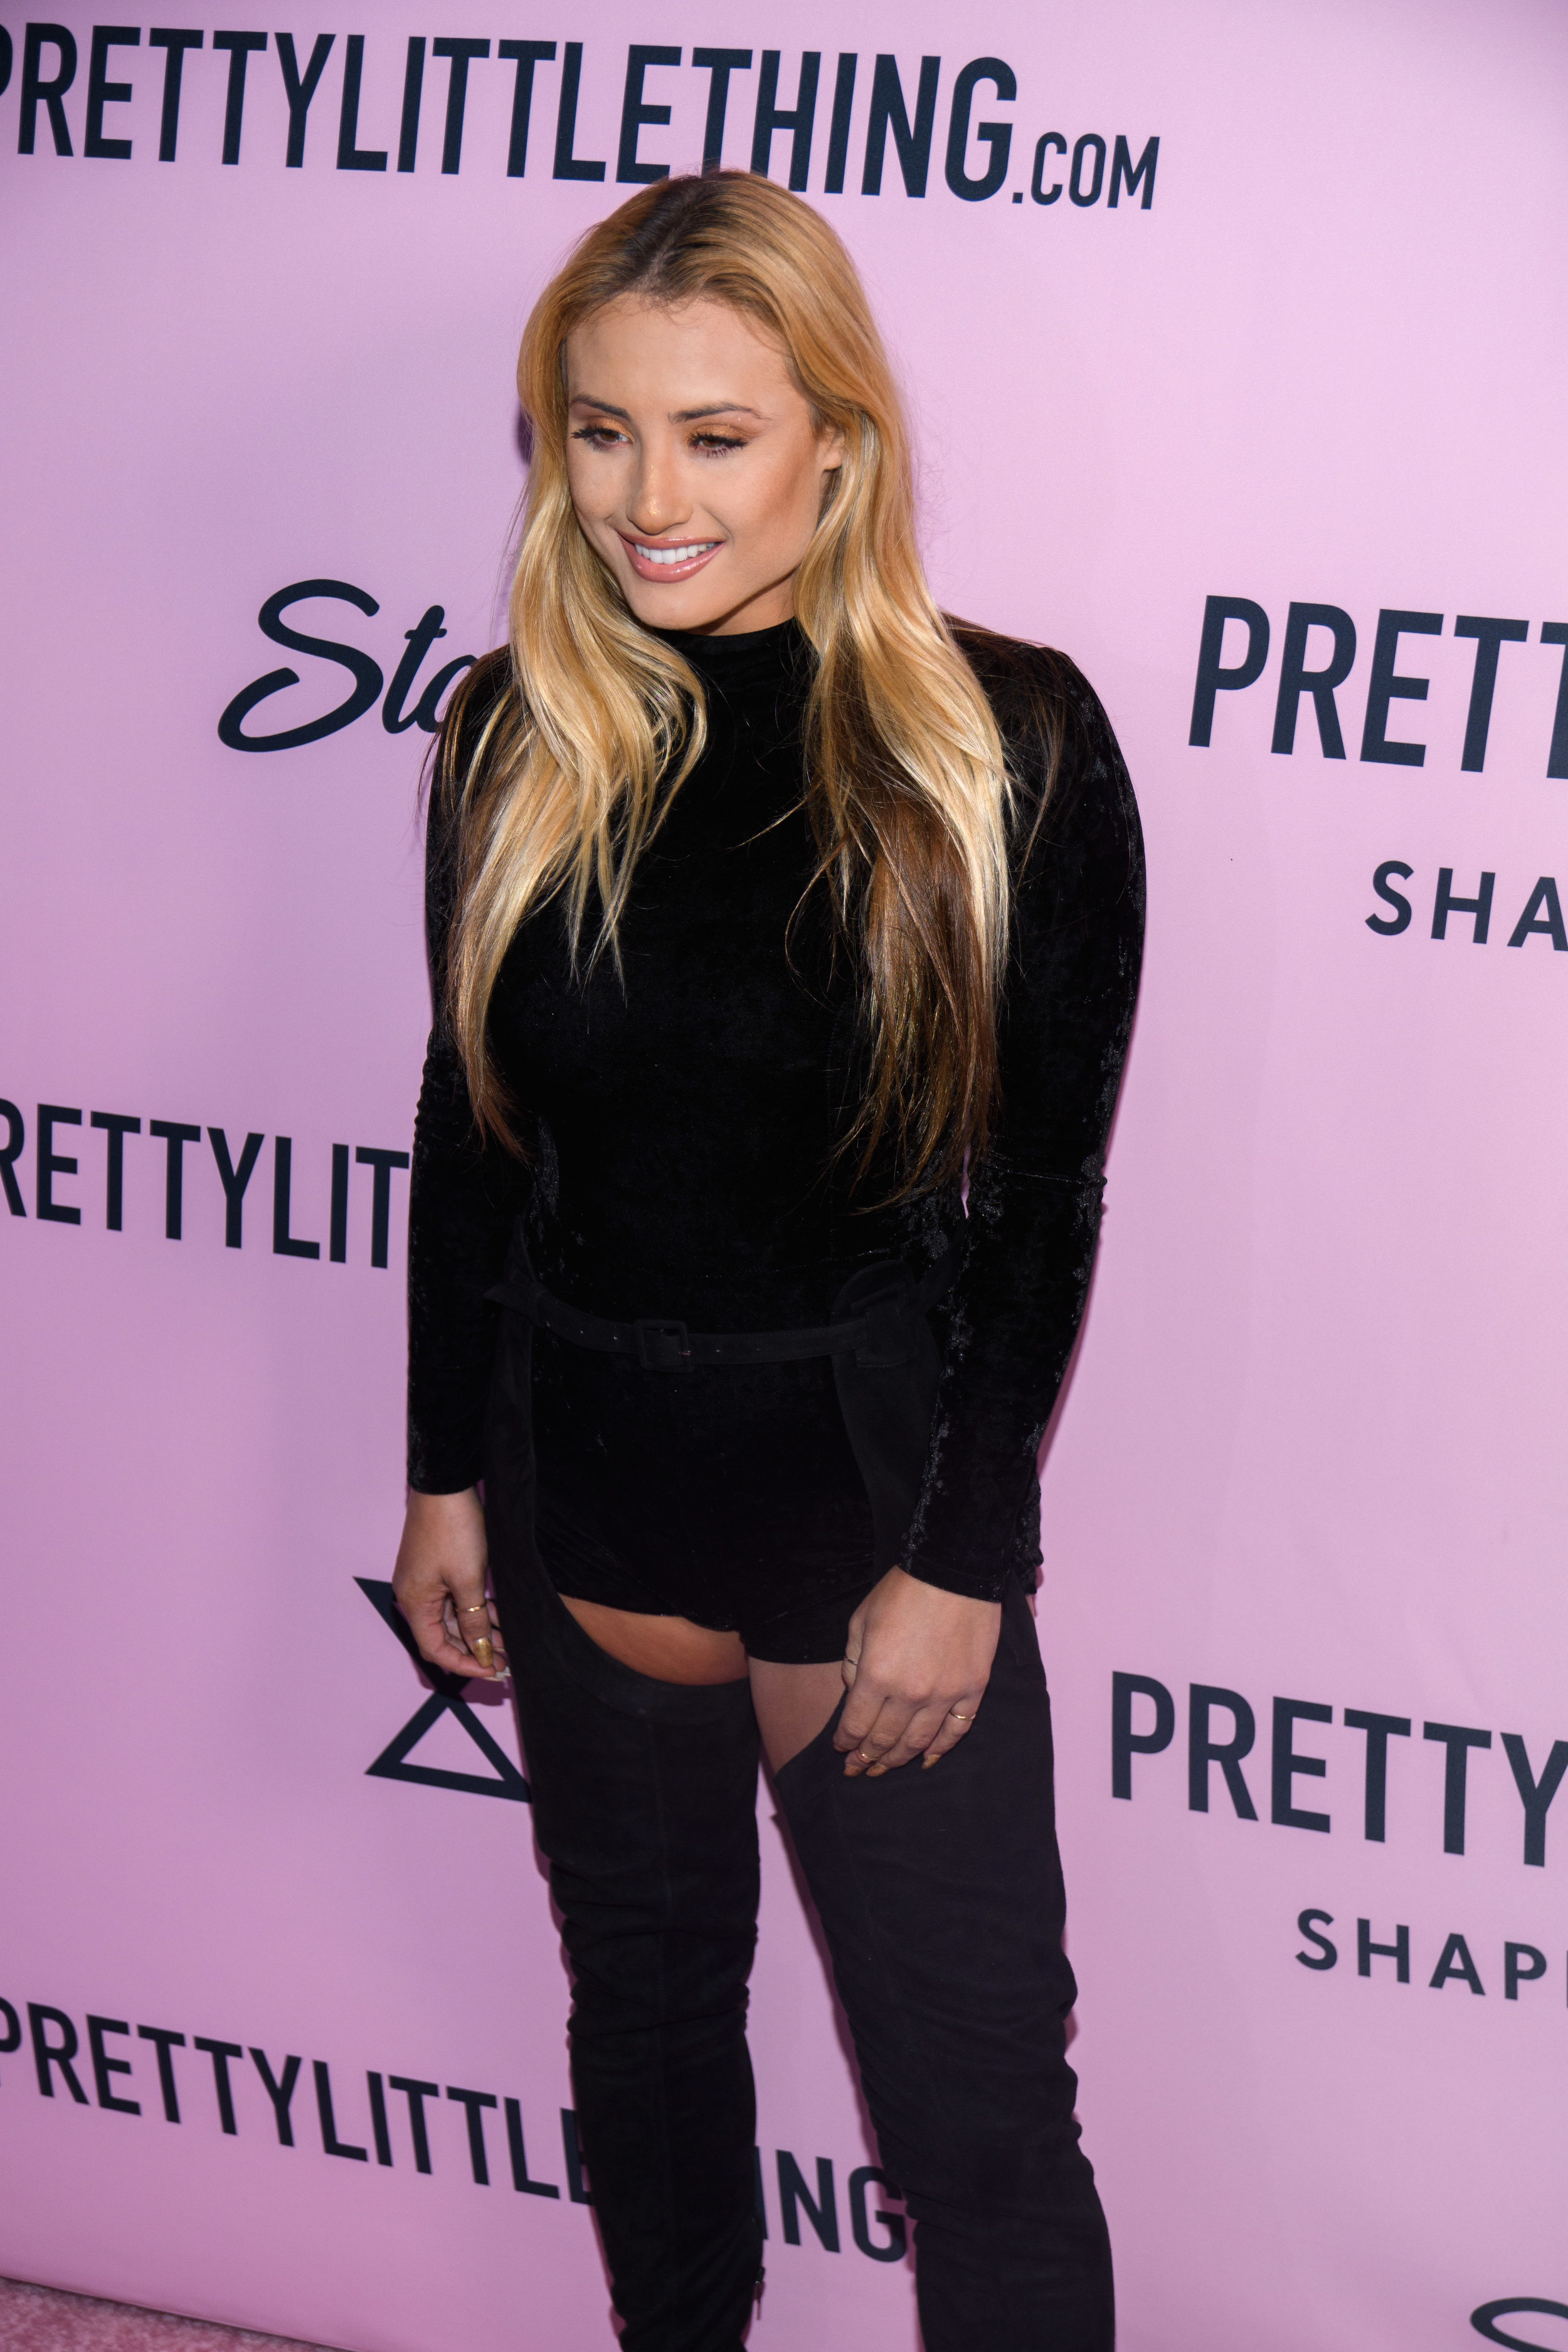 PrettyLittleThing New PLT Shape Collection with Stassie Celebrity Launch Party Montana Tucker.jpg